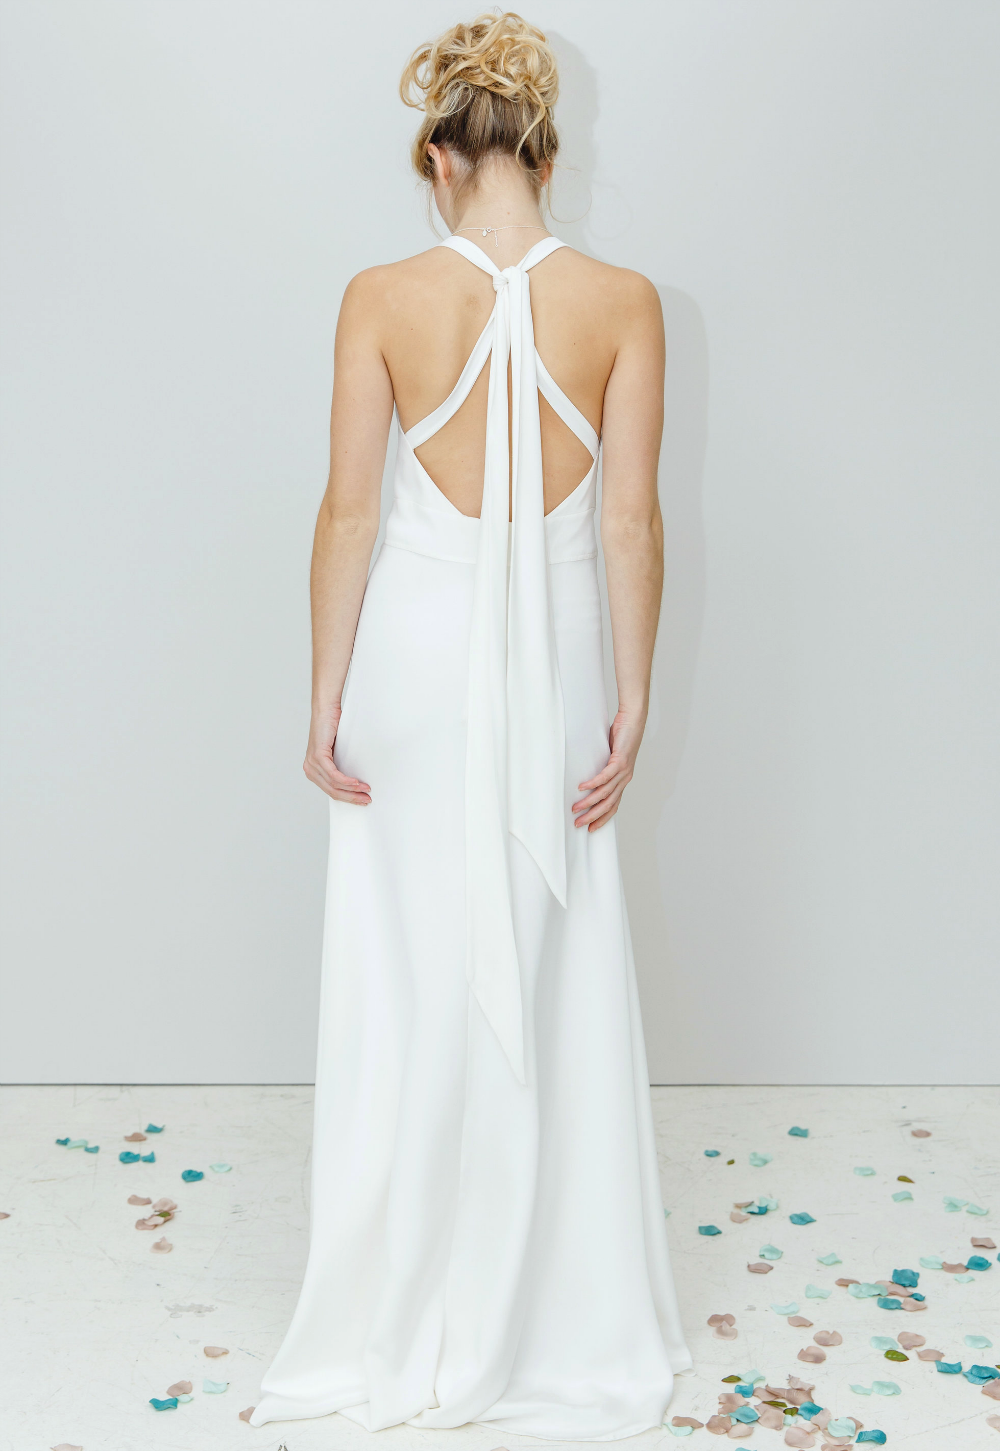 Low back boho wedding dress. Simple Modern Unstructured wedding ...